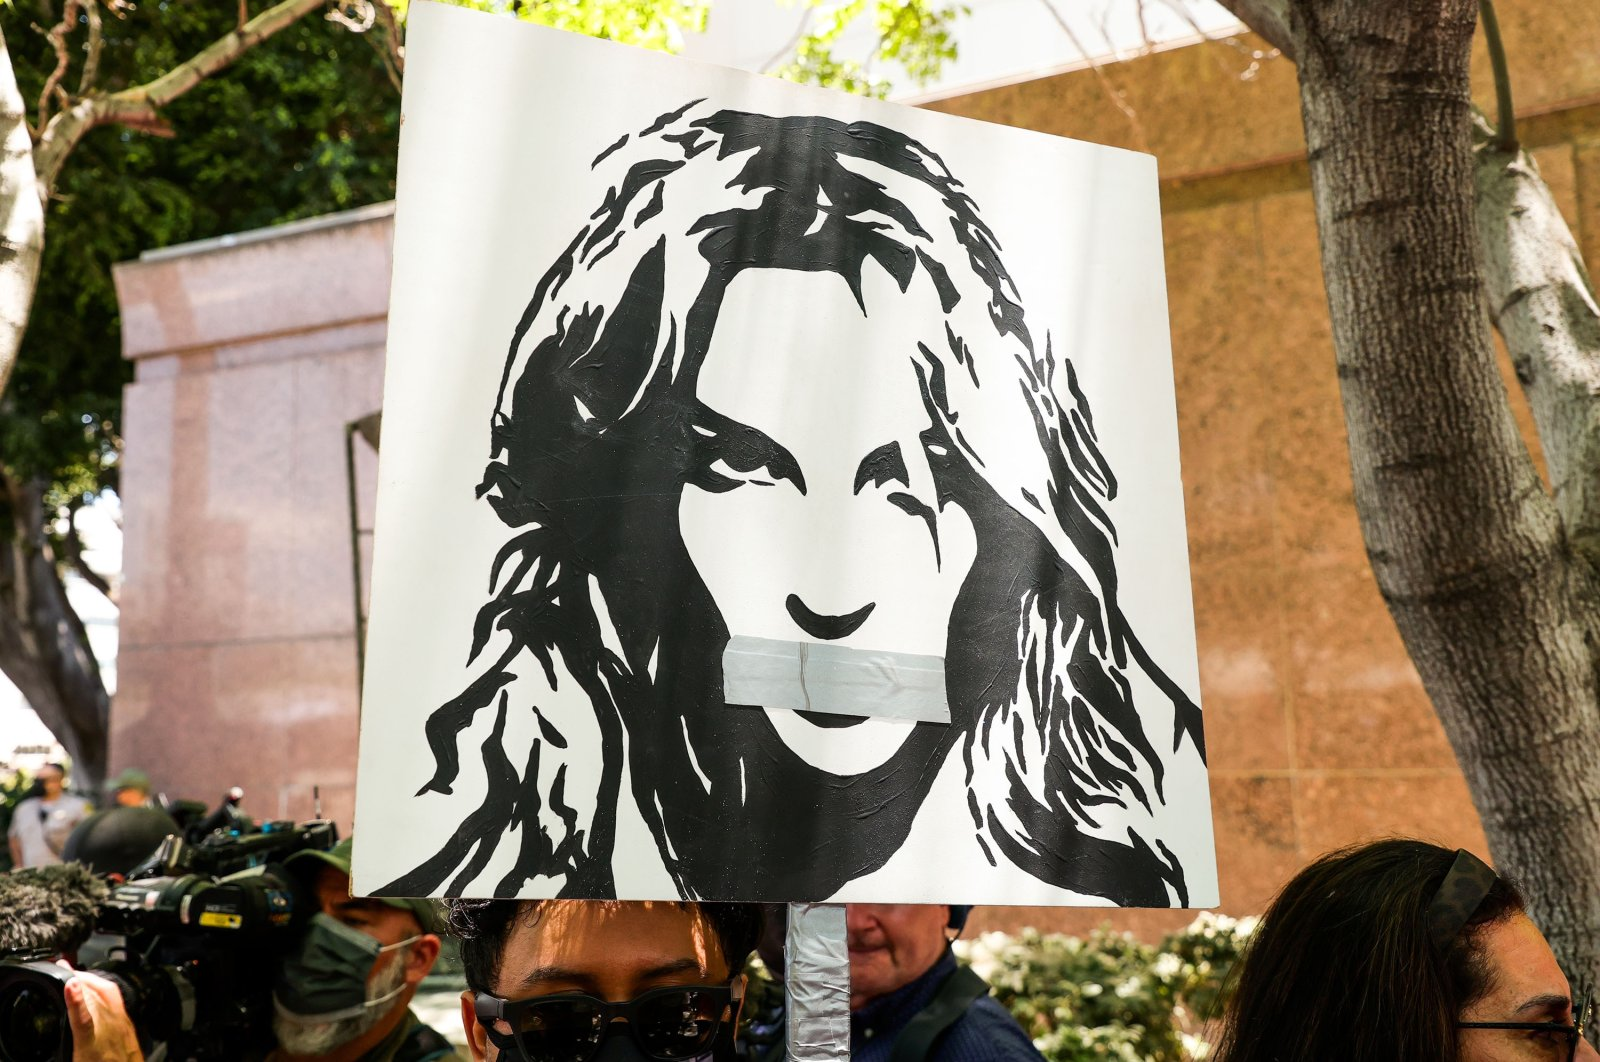 Activists protest at Los Angeles Grand Park during a conservatorship hearing for Britney Spears, in Los Angeles, California, U.S., June 23, 2021. (Getty Images)